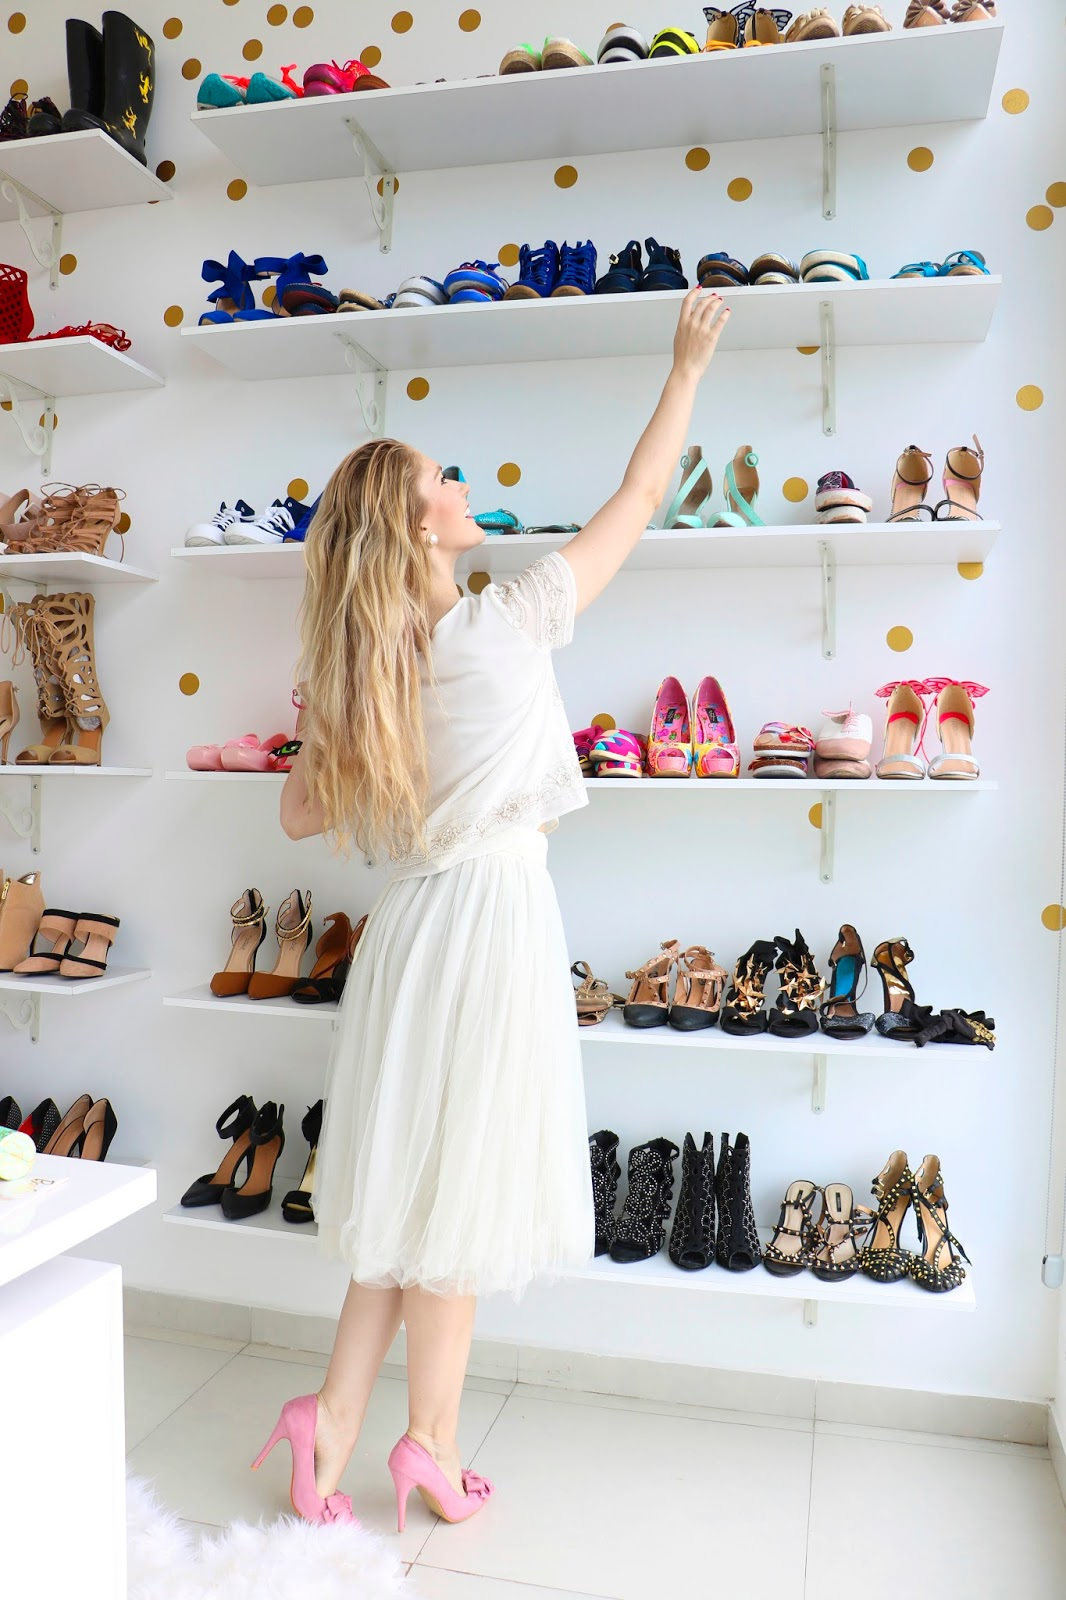 My dream closet had to include a ceiling to floor display of my shoe collection!